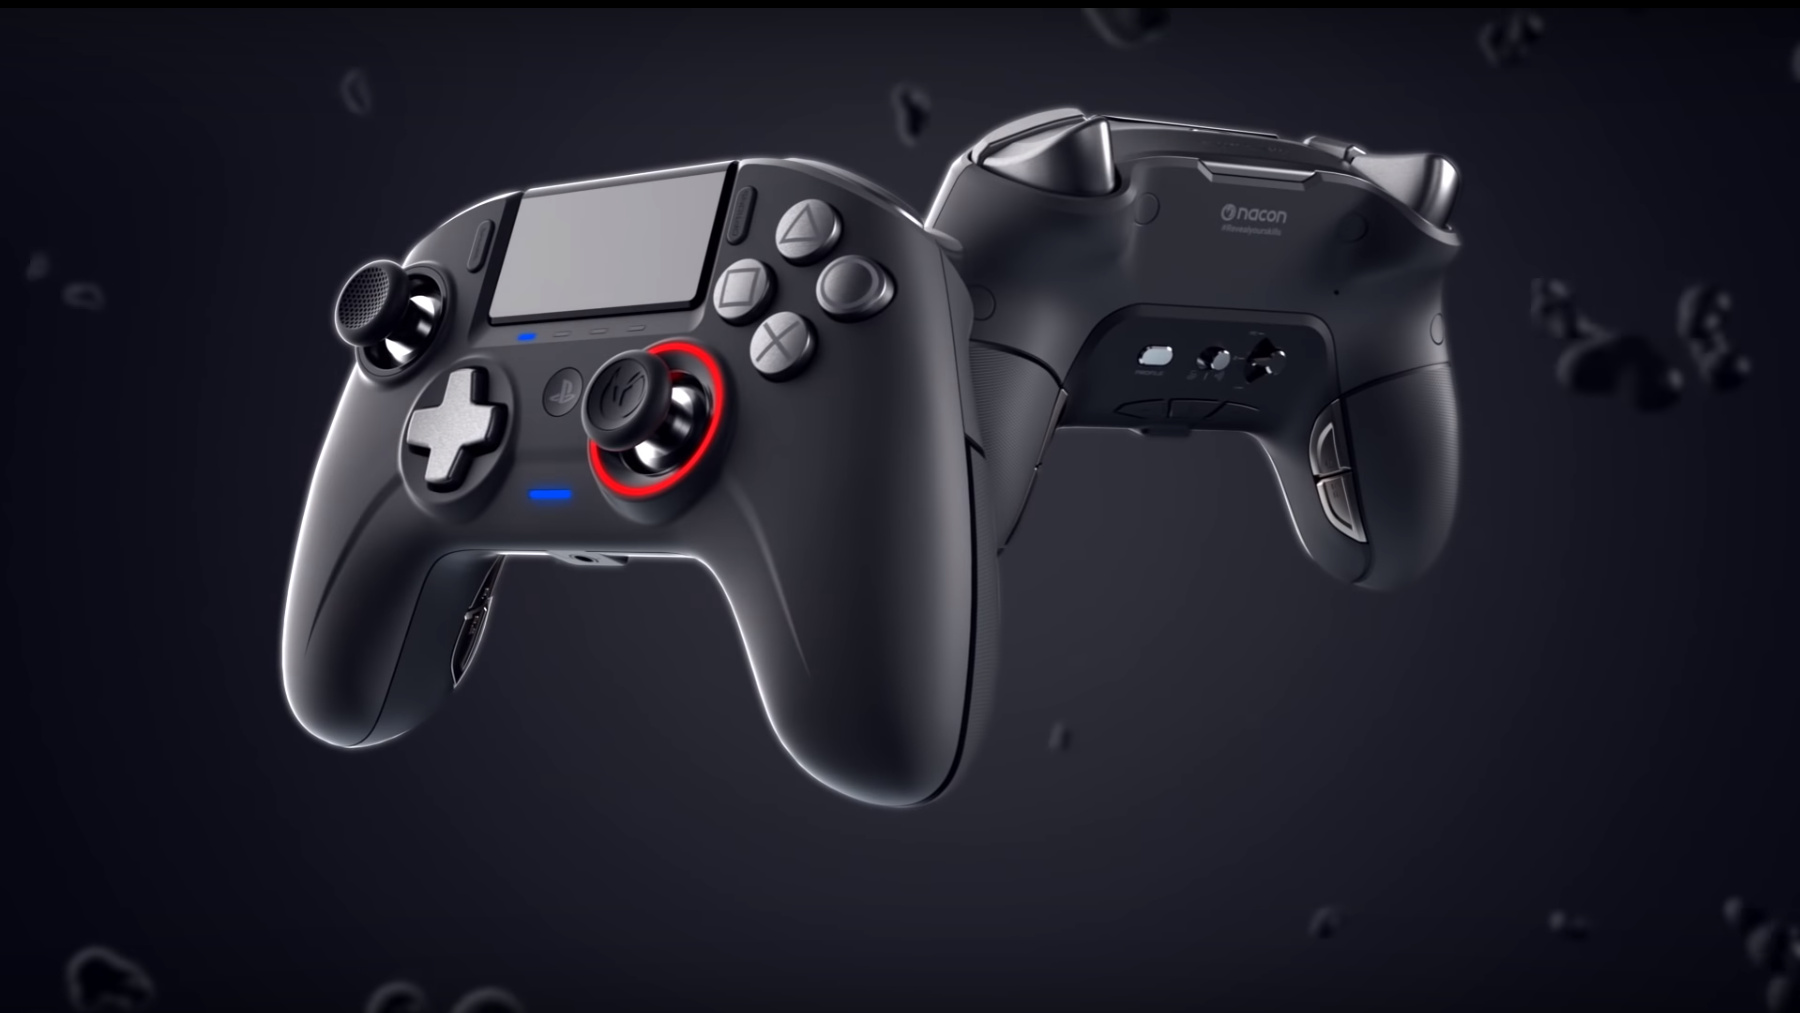 Hardware Review: Nacon Revolution Unlimited PS4 Controller